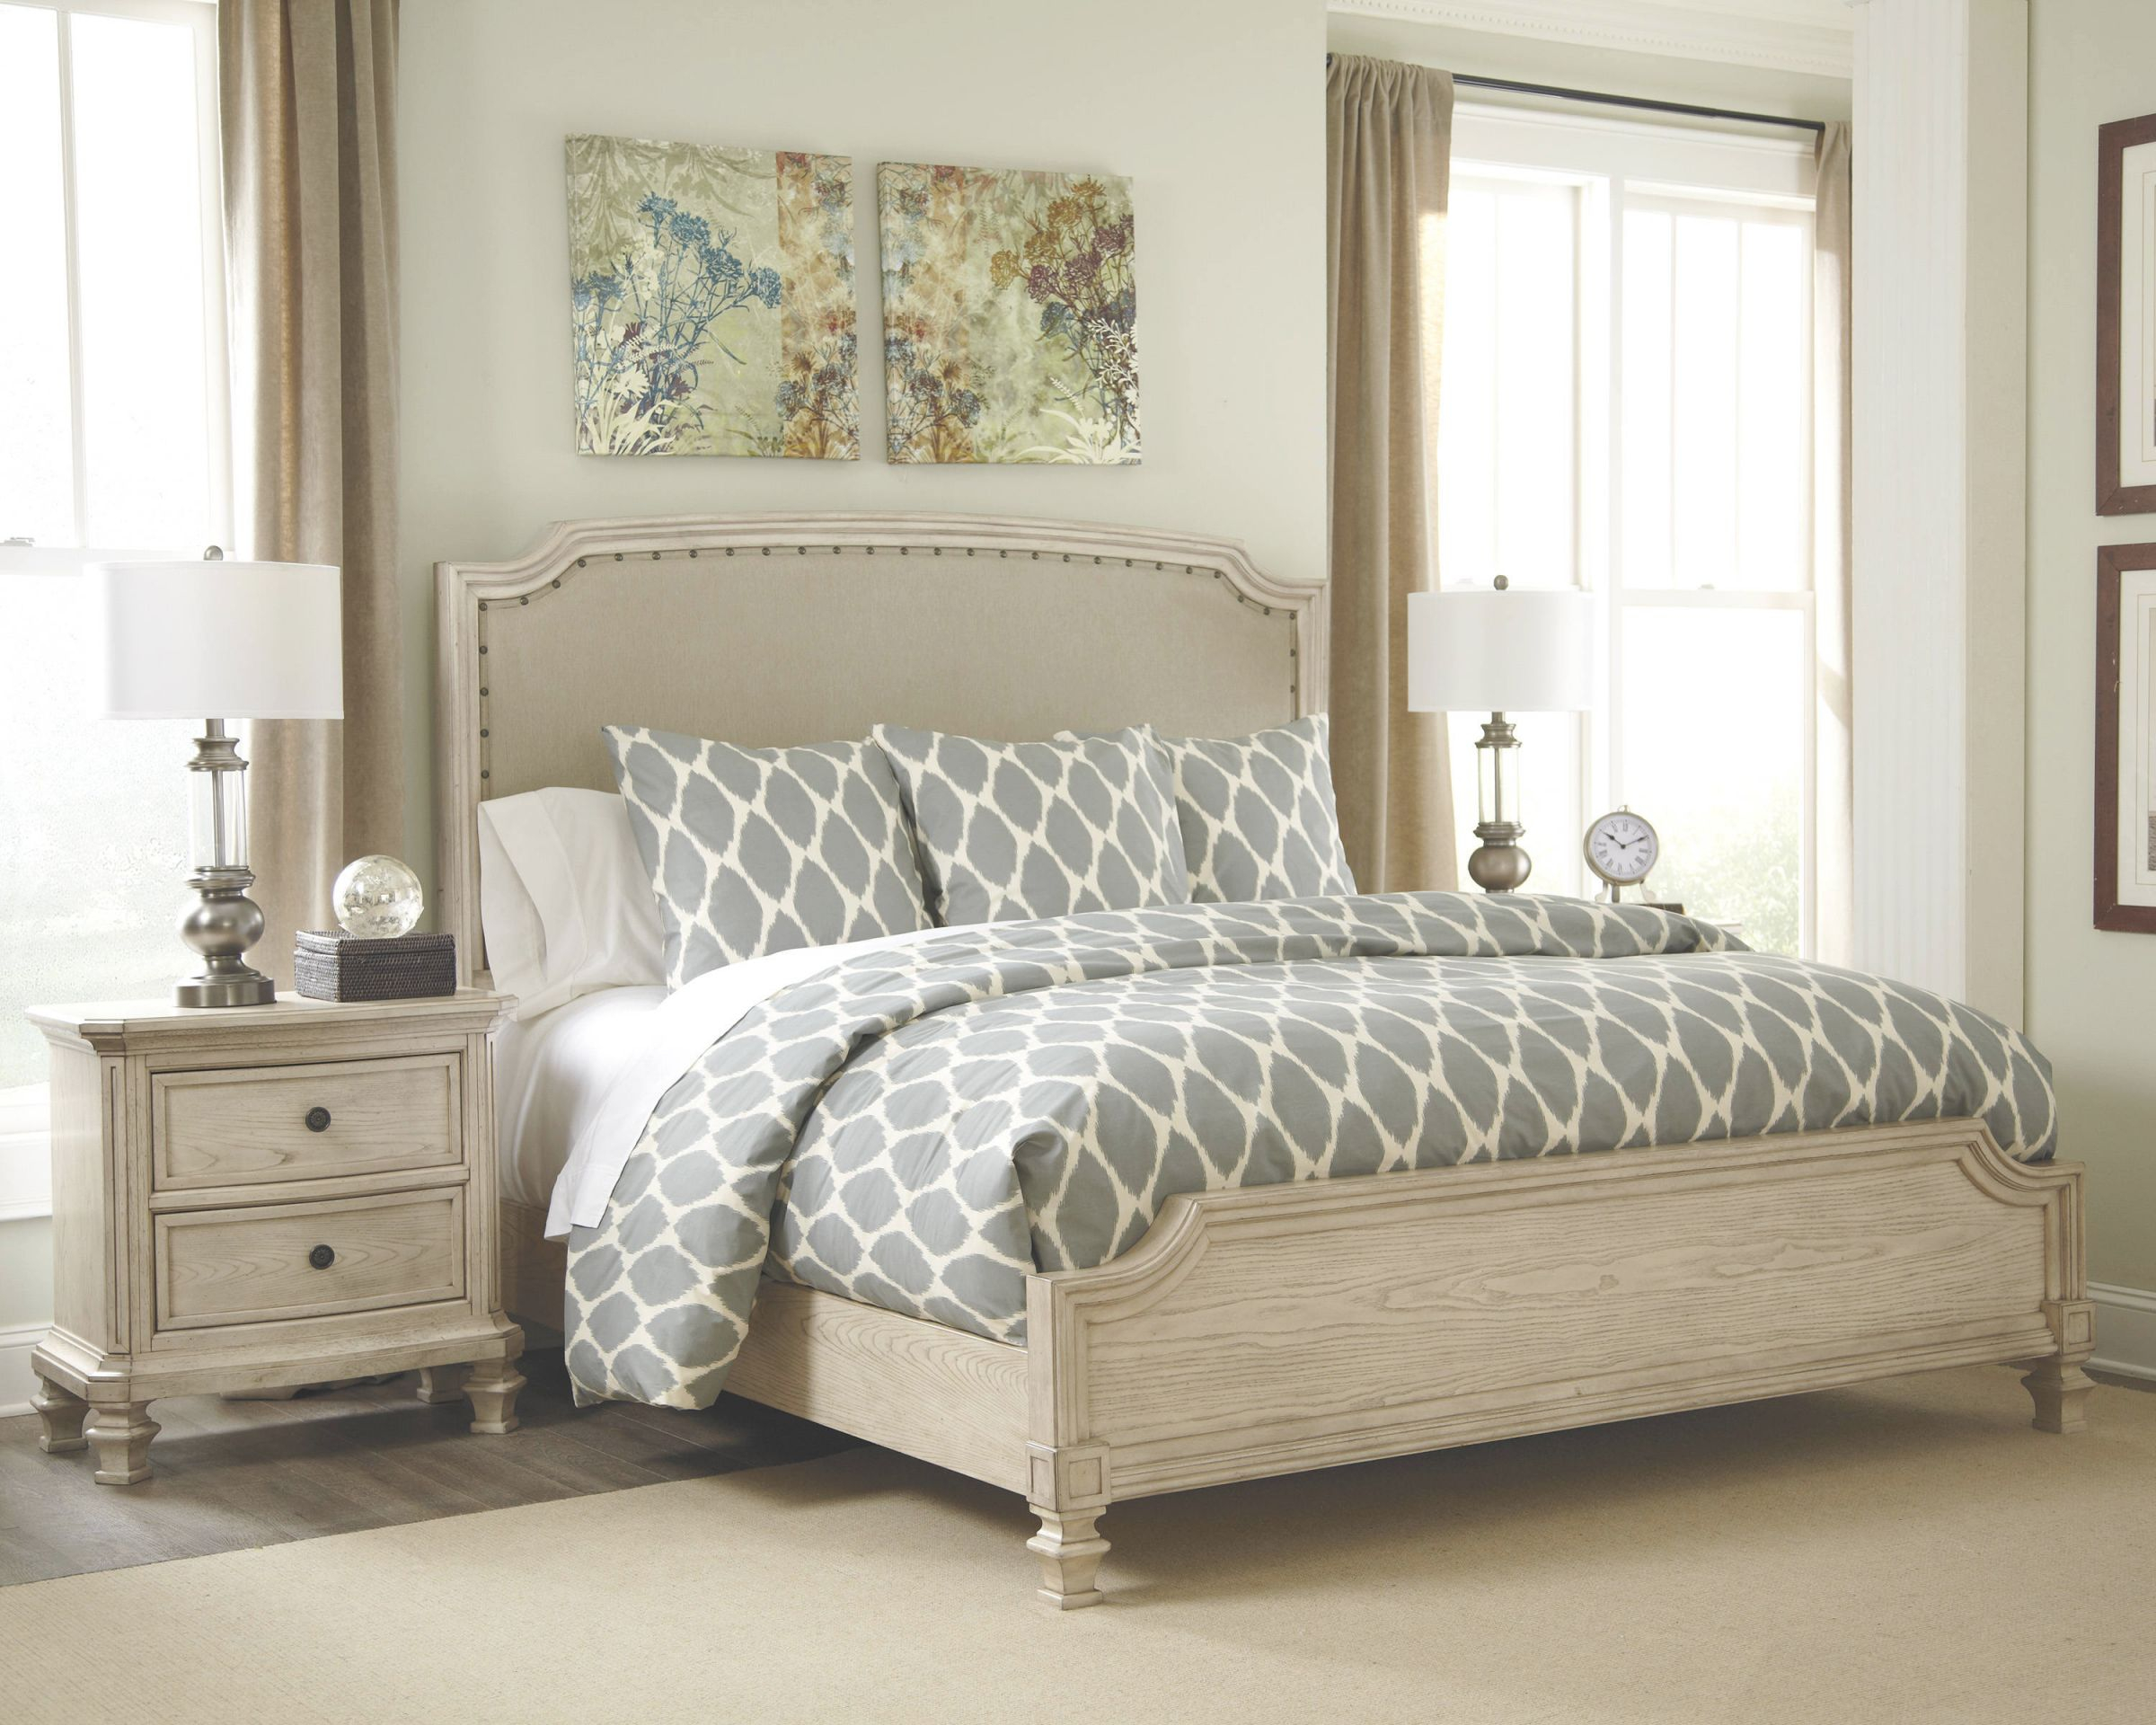 Ashley Furniture Demarlos 2pc Bedroom Set With Cal King Bed Inside Awesome Ashley Furniture King Size Bedroom Sets Awesome Decors